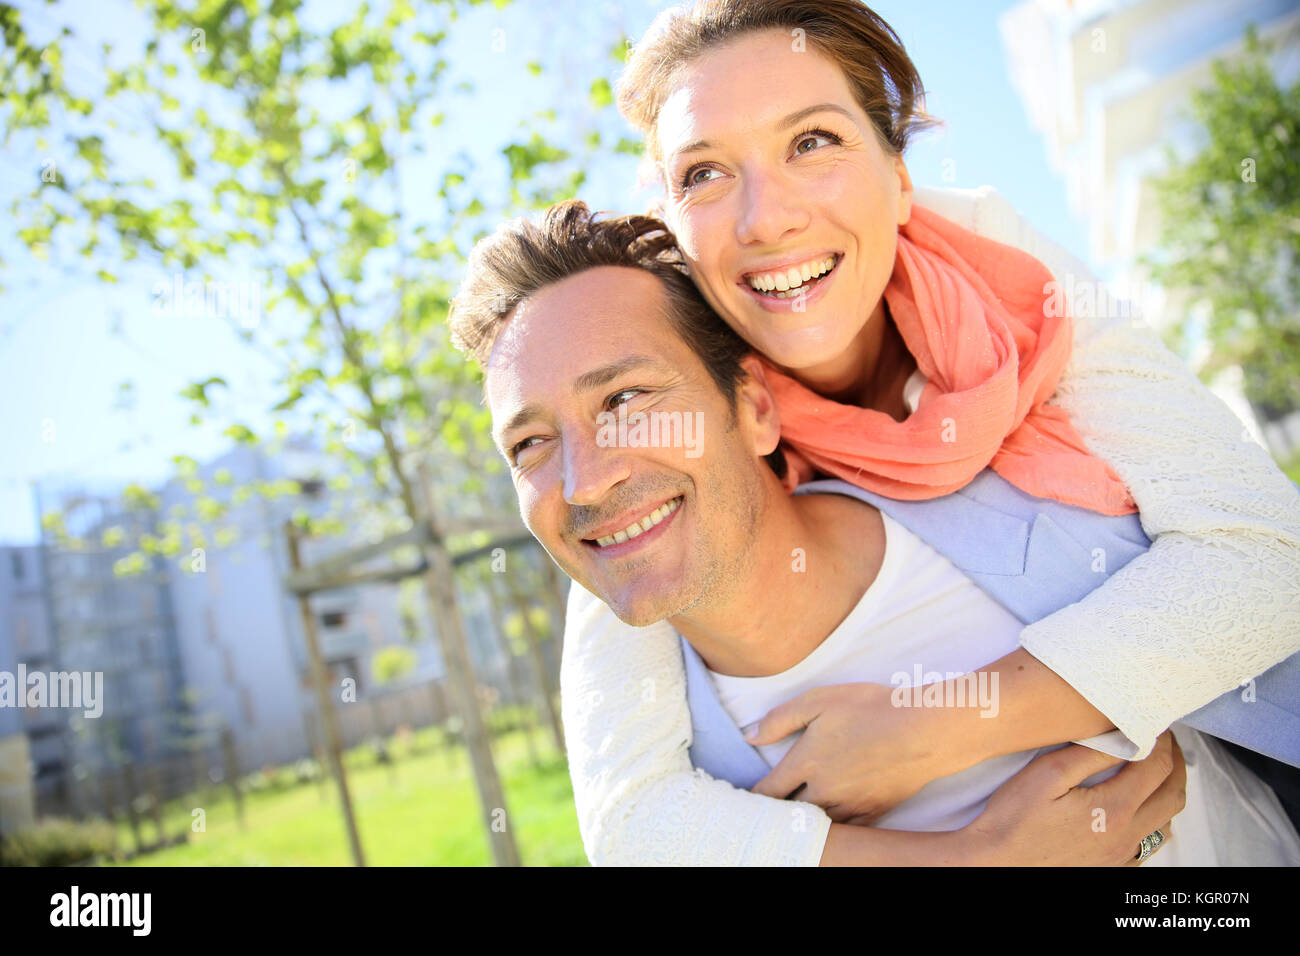 Man giving piggyback ride to woman in park - Stock Image